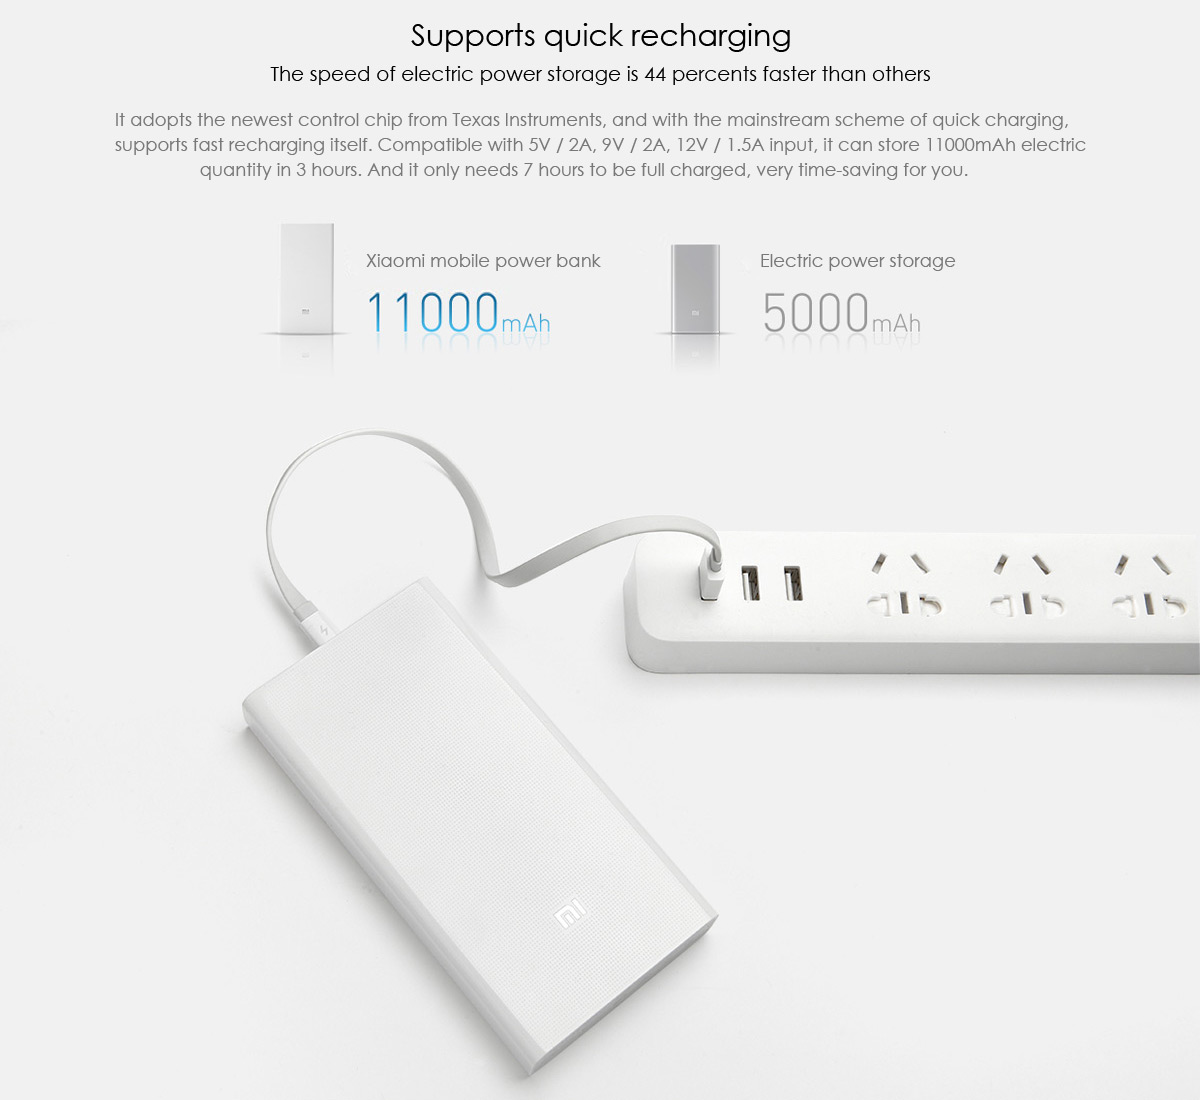 Original Xiaomi Mi 20000mAh Mobile Power Bank Portable Charger Dual USB Outputs Quick Recharging- White